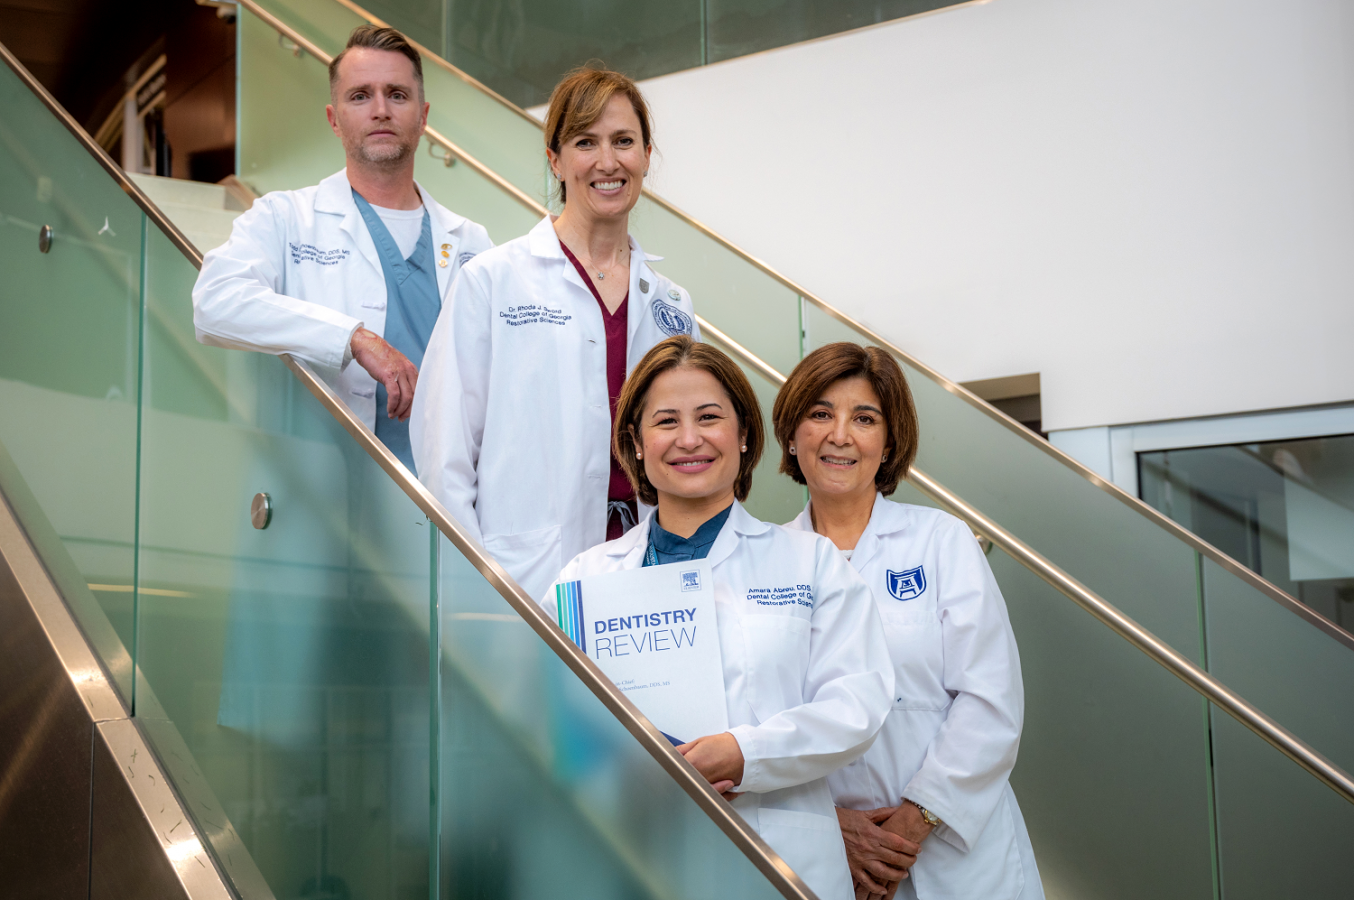 1 man and 3 women in whitecoats, standing on stairs